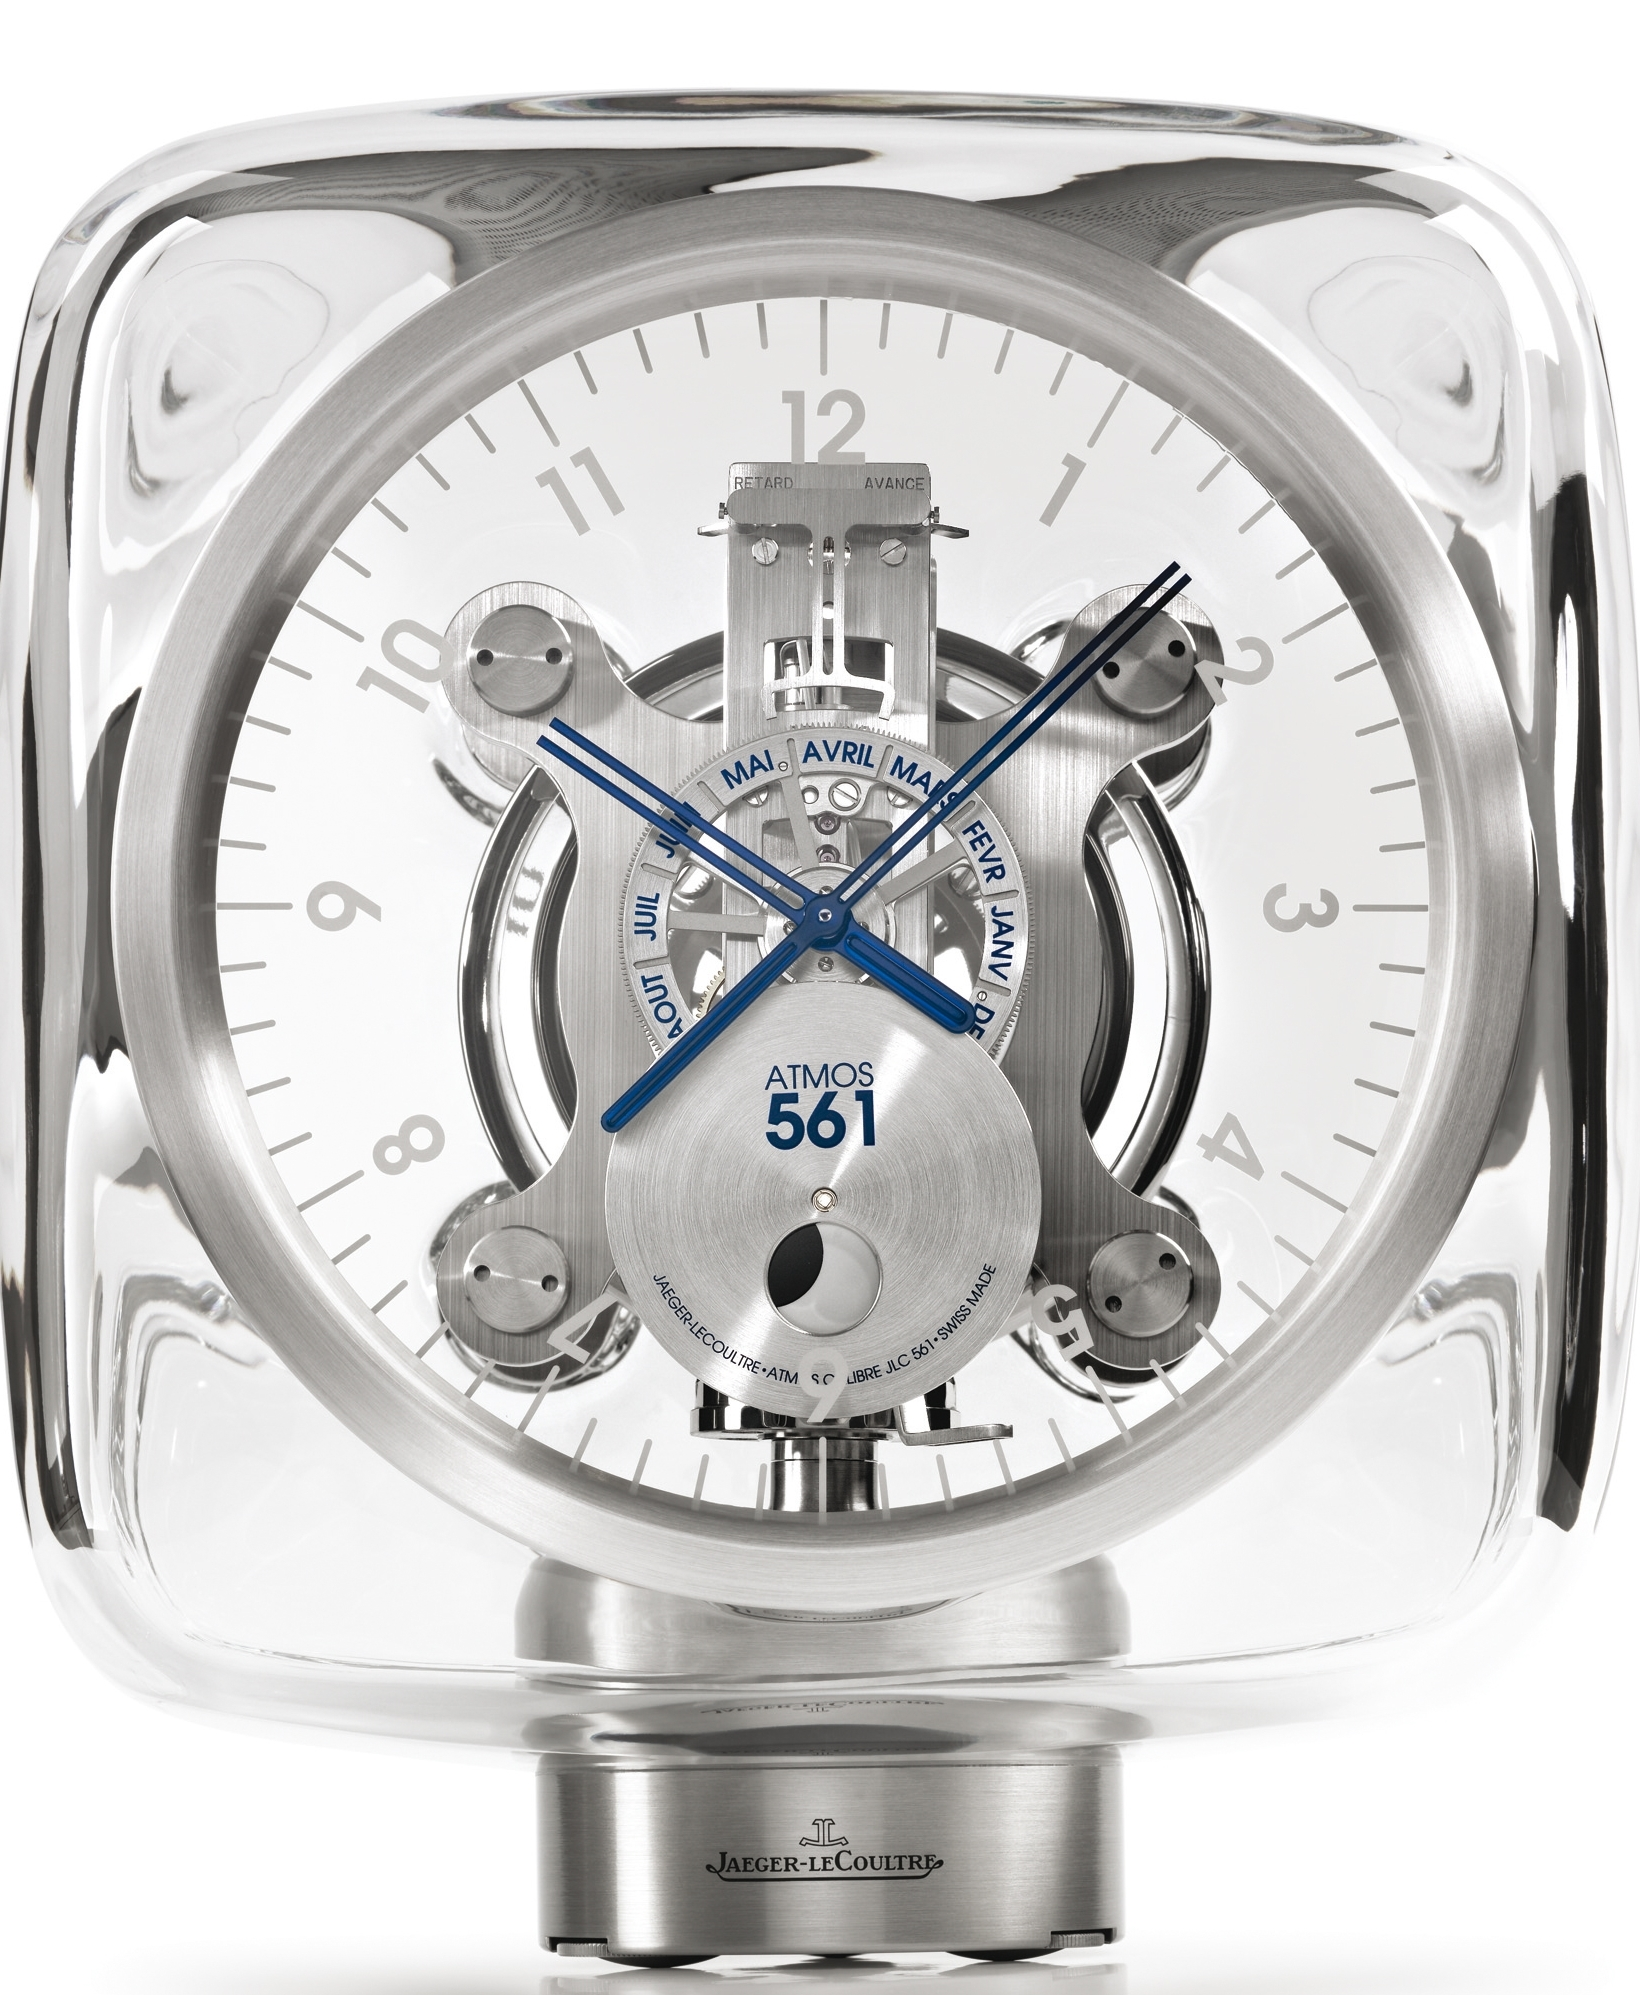 Jaeger LeCoultre Atmos Clock 2010 Designed by Marc Newson